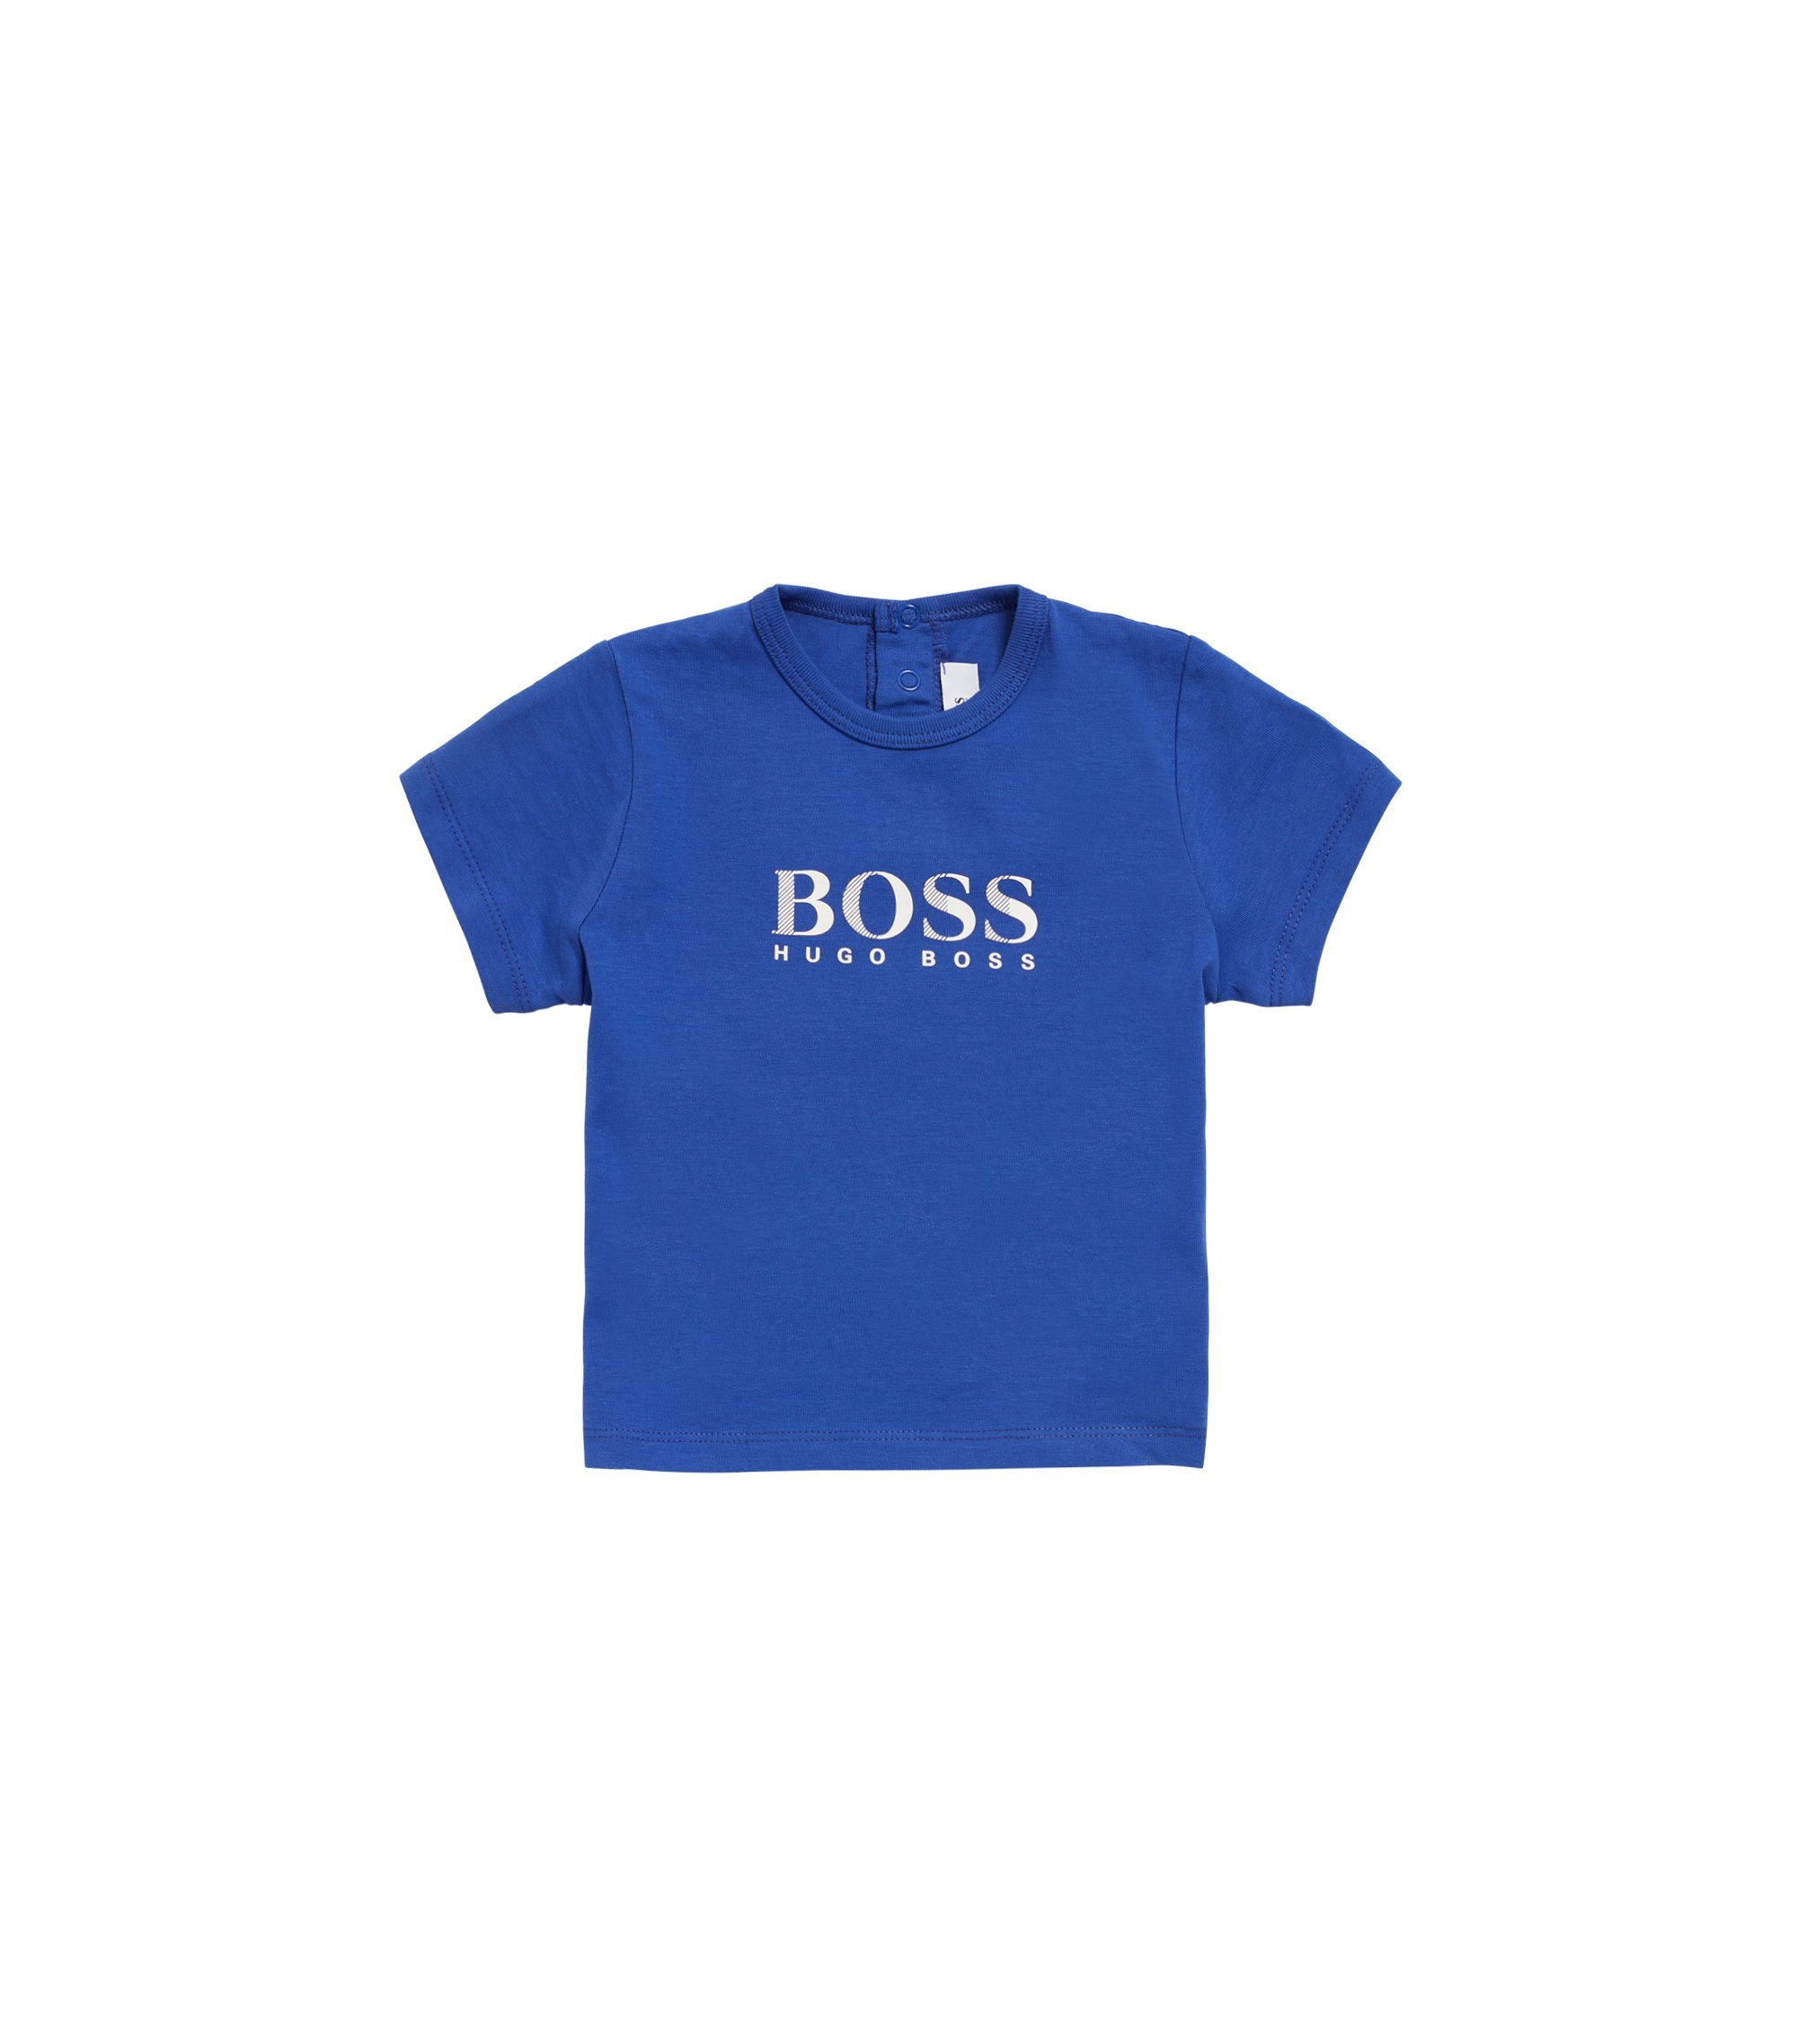 Kids-T-Shirt aus Single Jersey mit Logo-Print, Blau